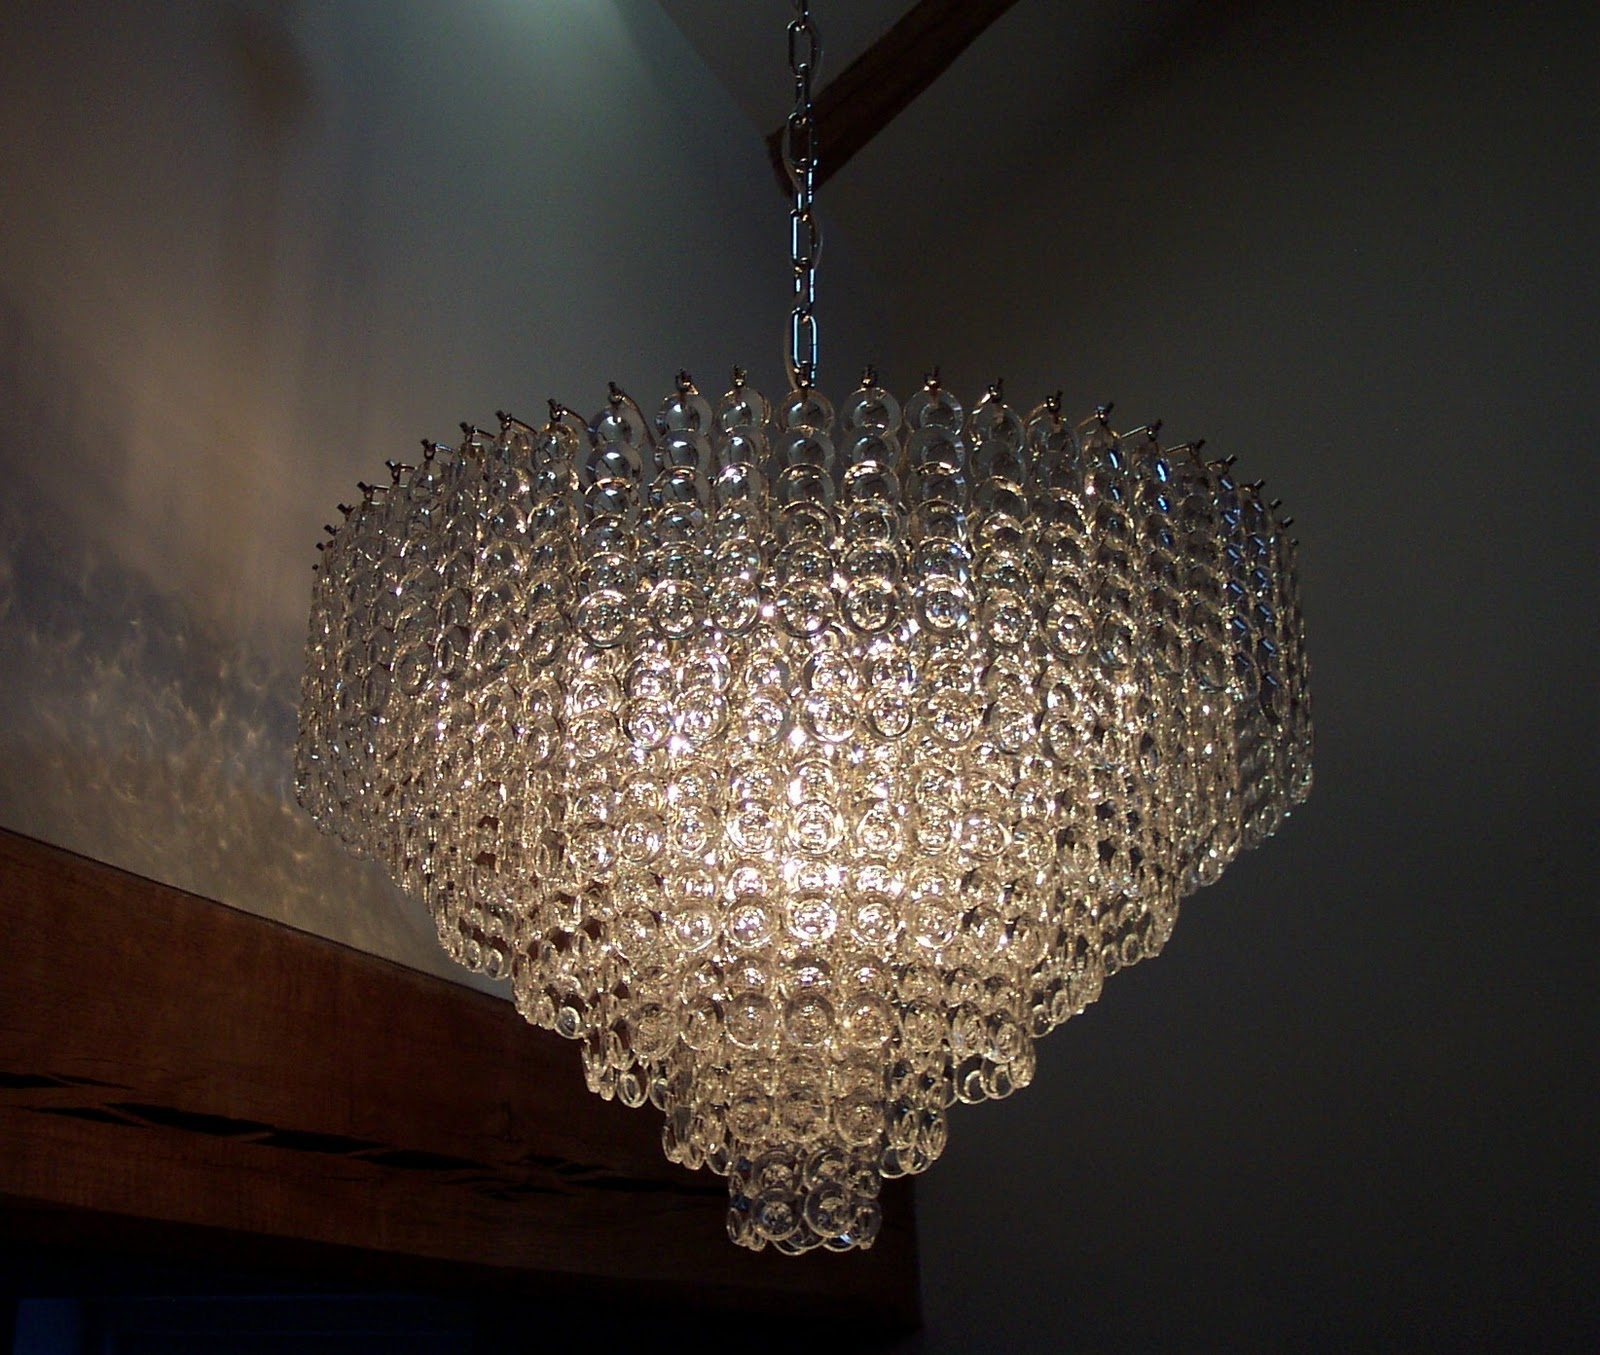 20thcenturycollectablescouk Regarding Italian Chandeliers Style (View 1 of 12)